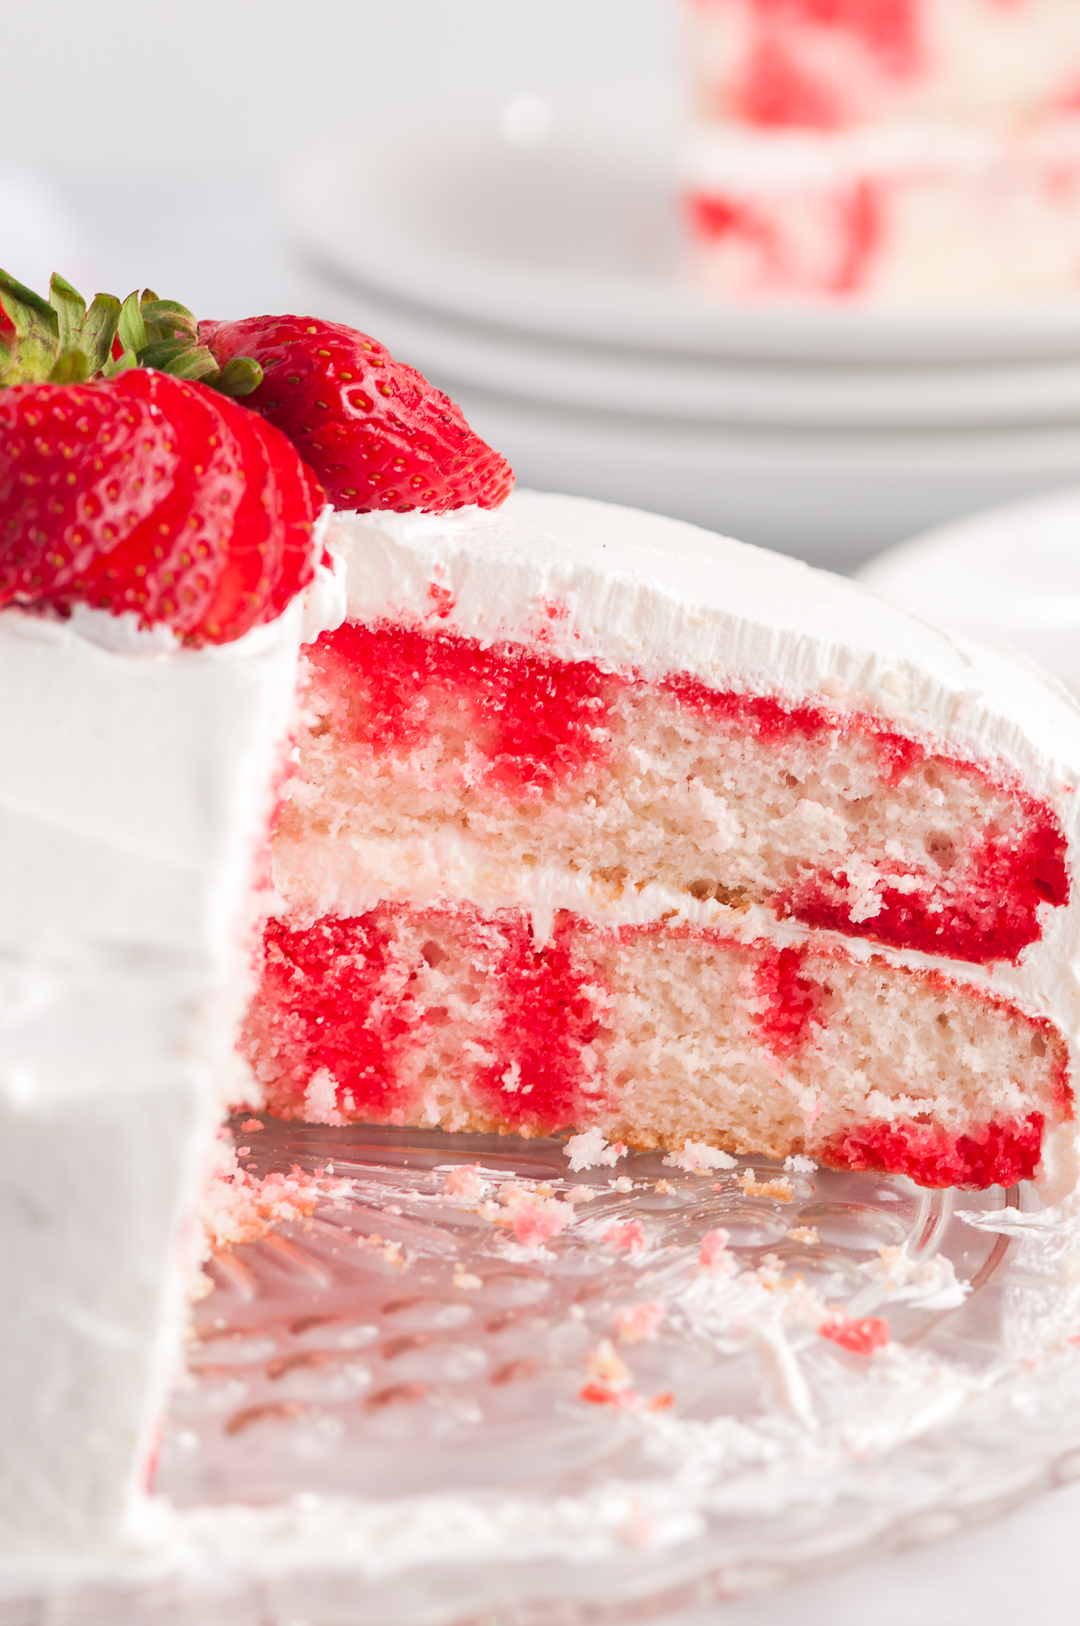 inside look at strawberry poke cake